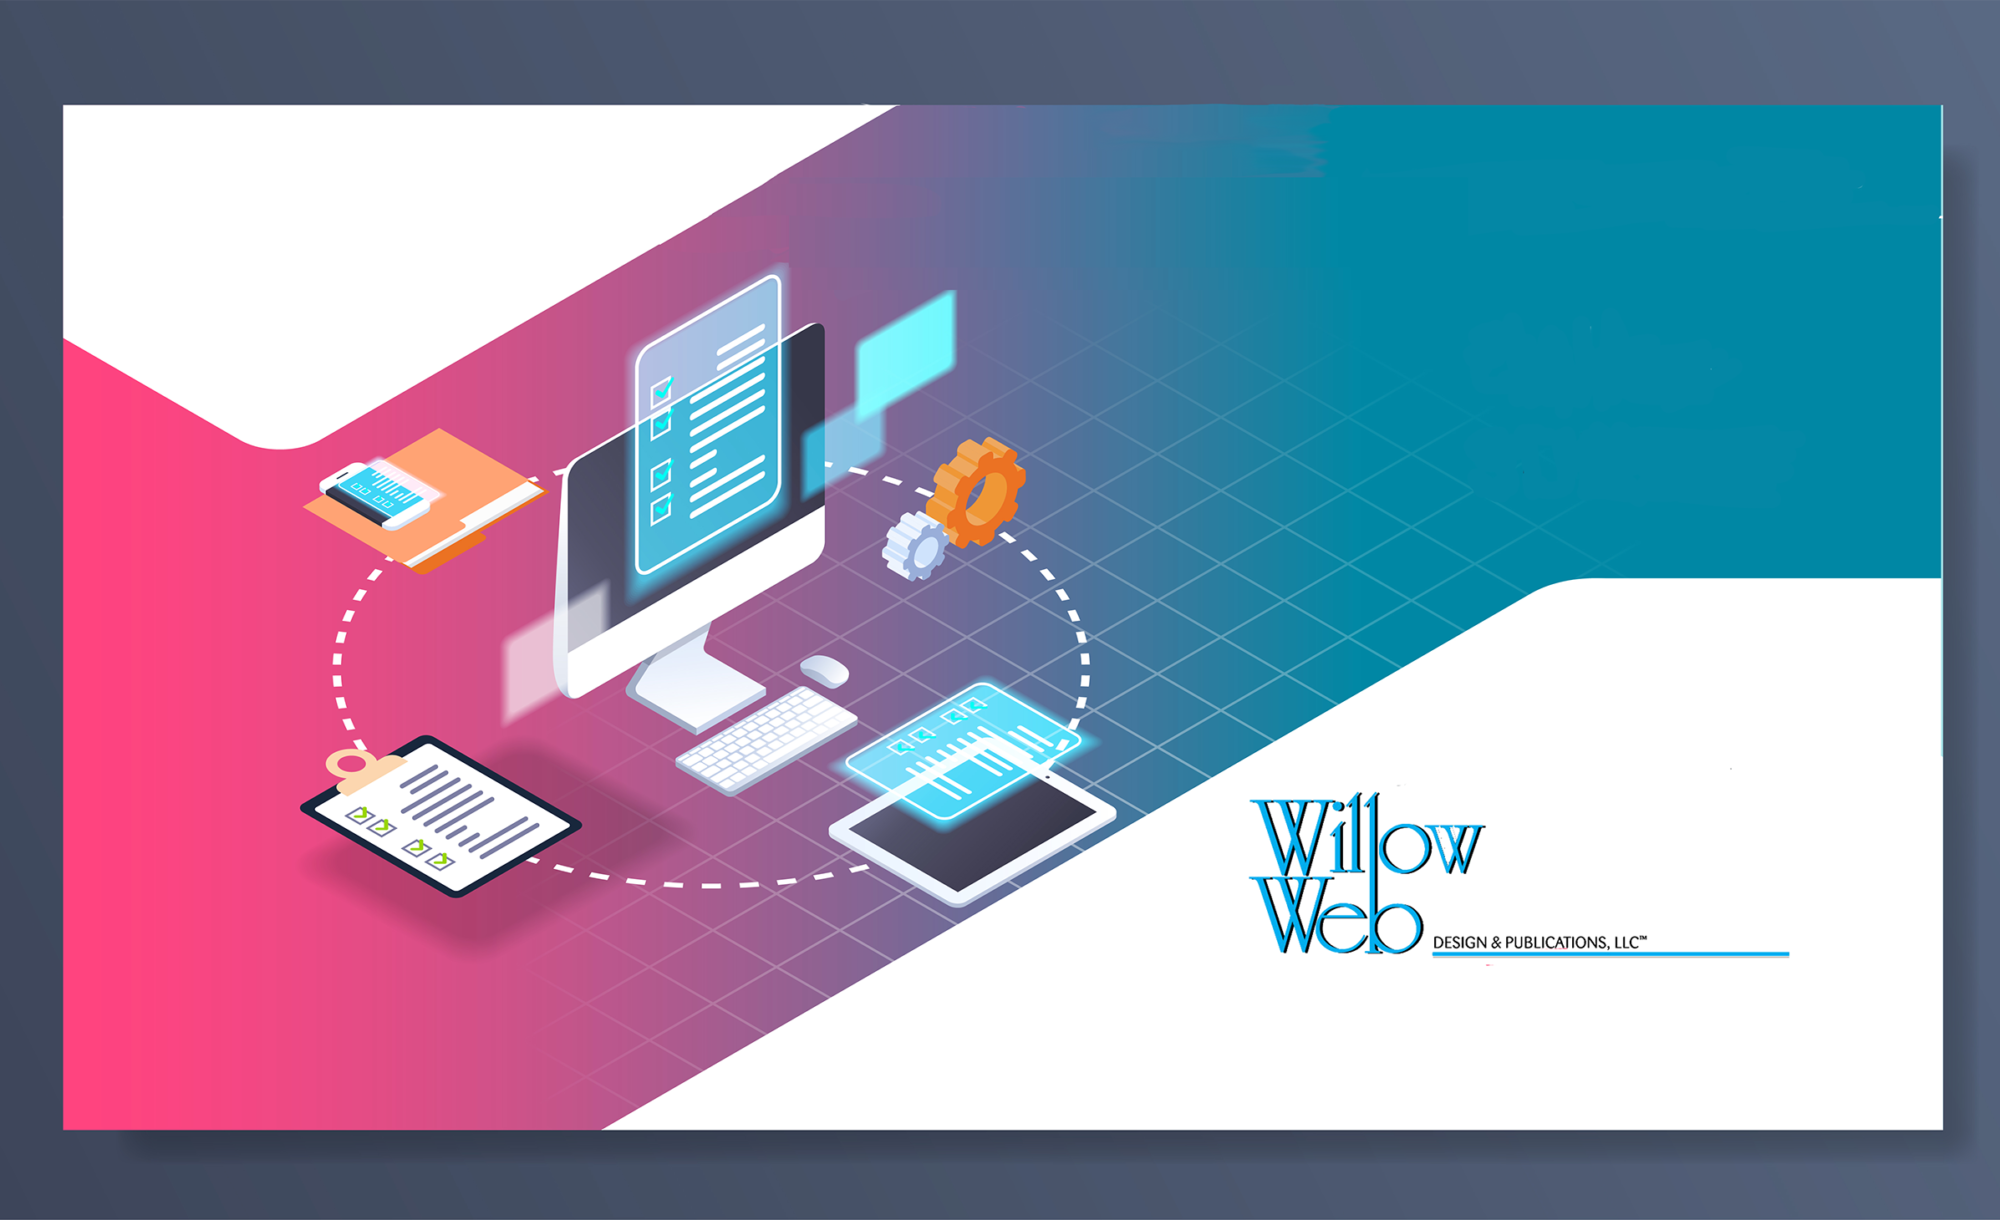 Willow Web Design and Publications